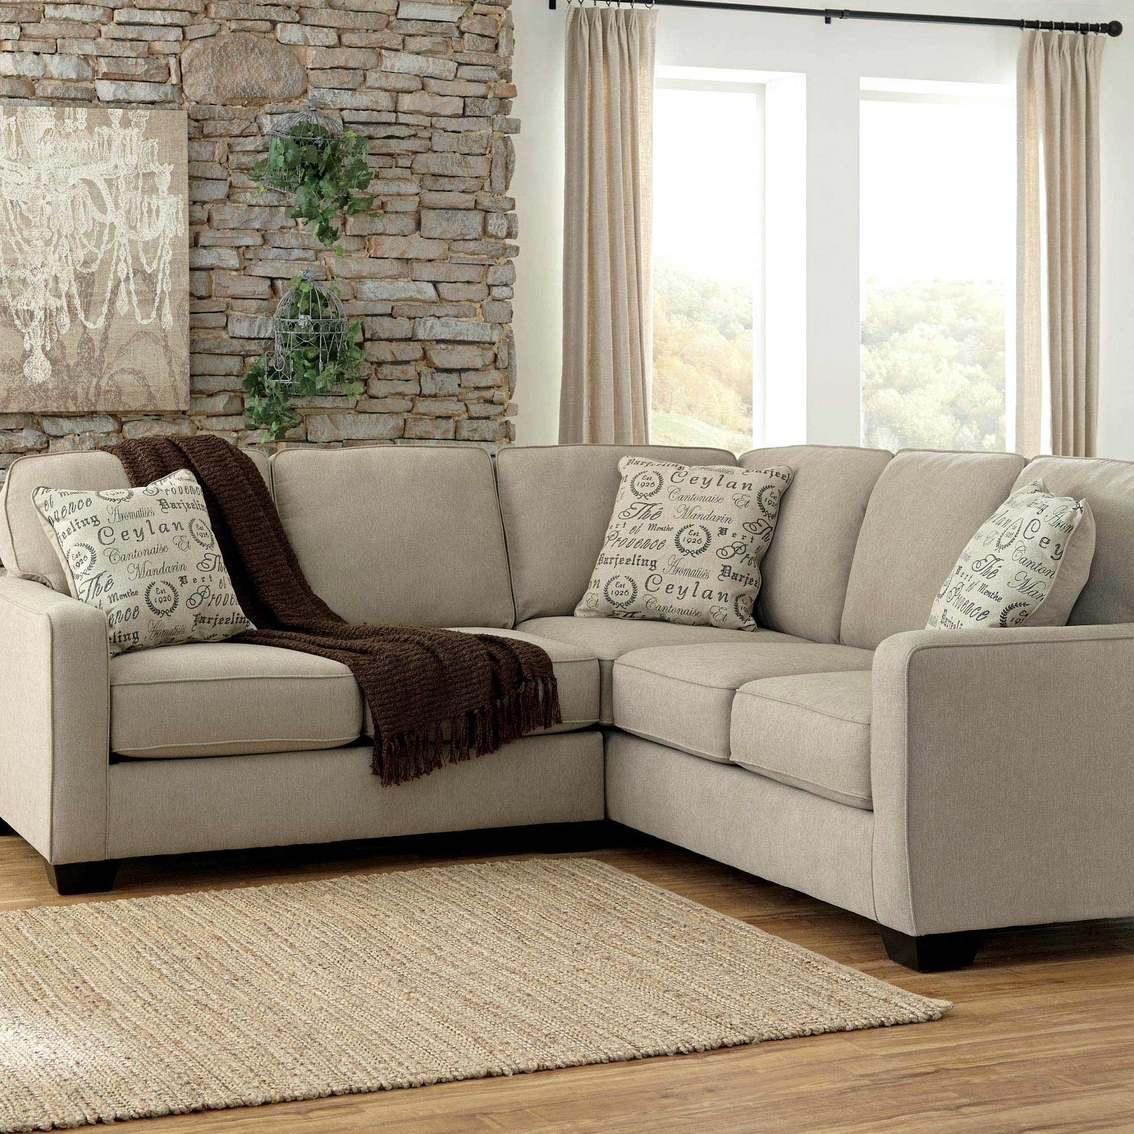 2017 Ashley Furniture Sectional Sofas — Cabinets, Beds, Sofas And With 2 Seat Sectional Sofas (View 14 of 15)